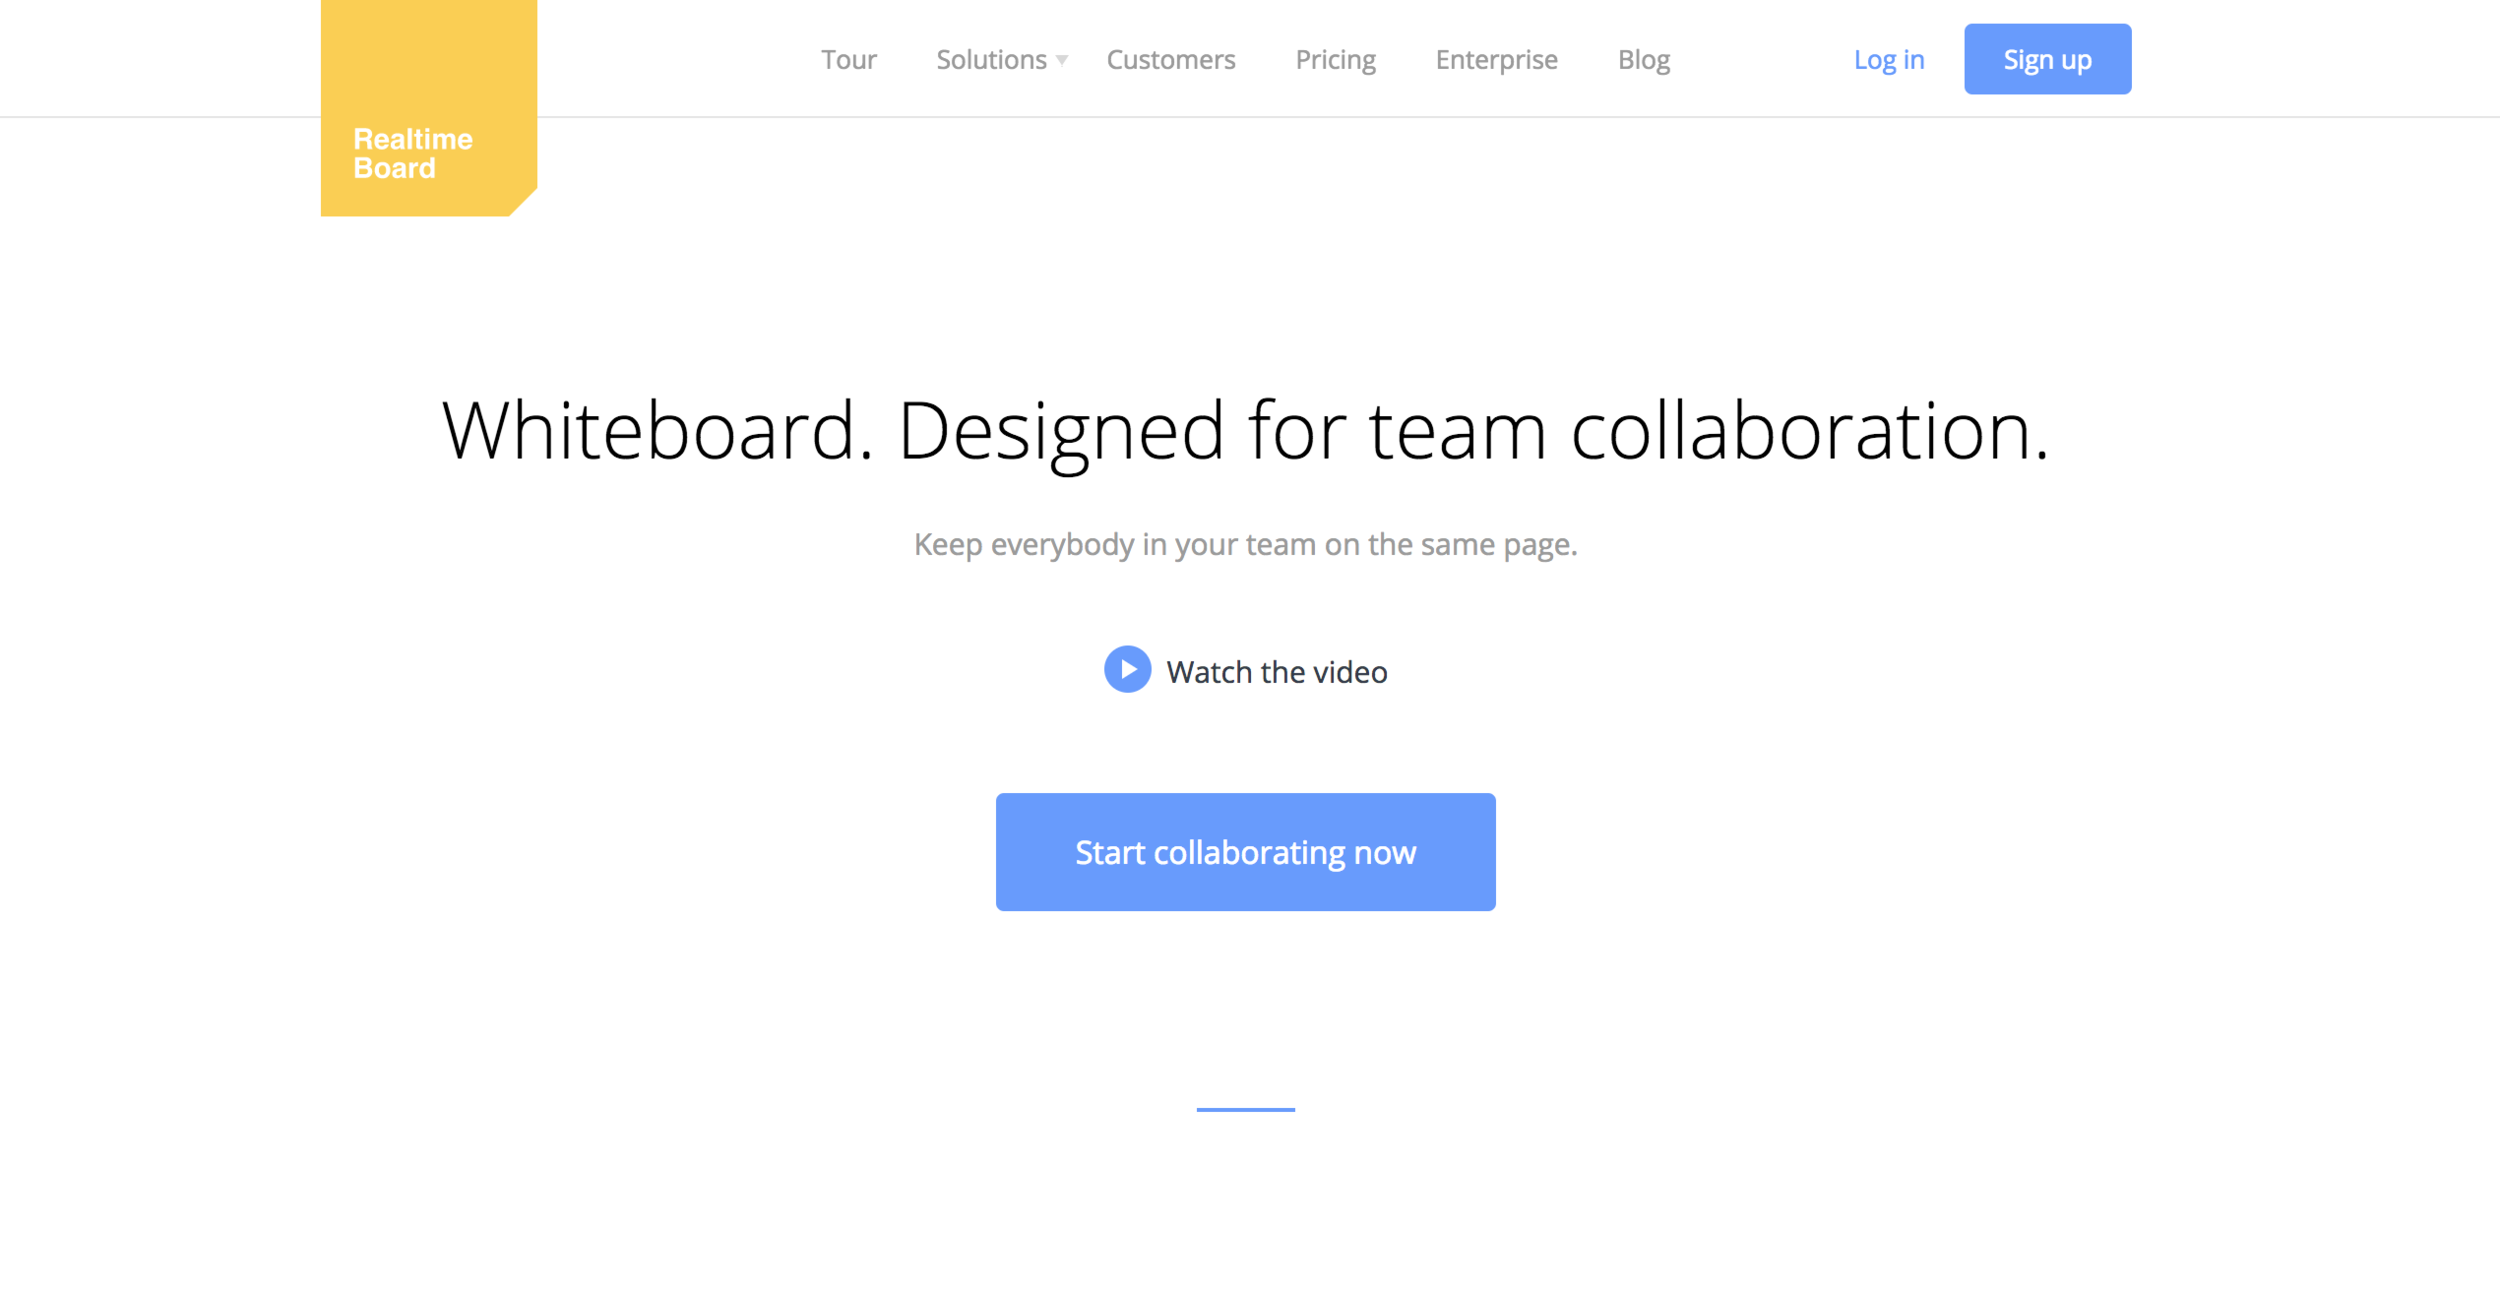 RealTimeBoard - Personally, this is my favorite brainstorming website that approximates the experience of working at a whiteboard. The collaborative features are impressive, and the sprawling products that emerge are enlightening.